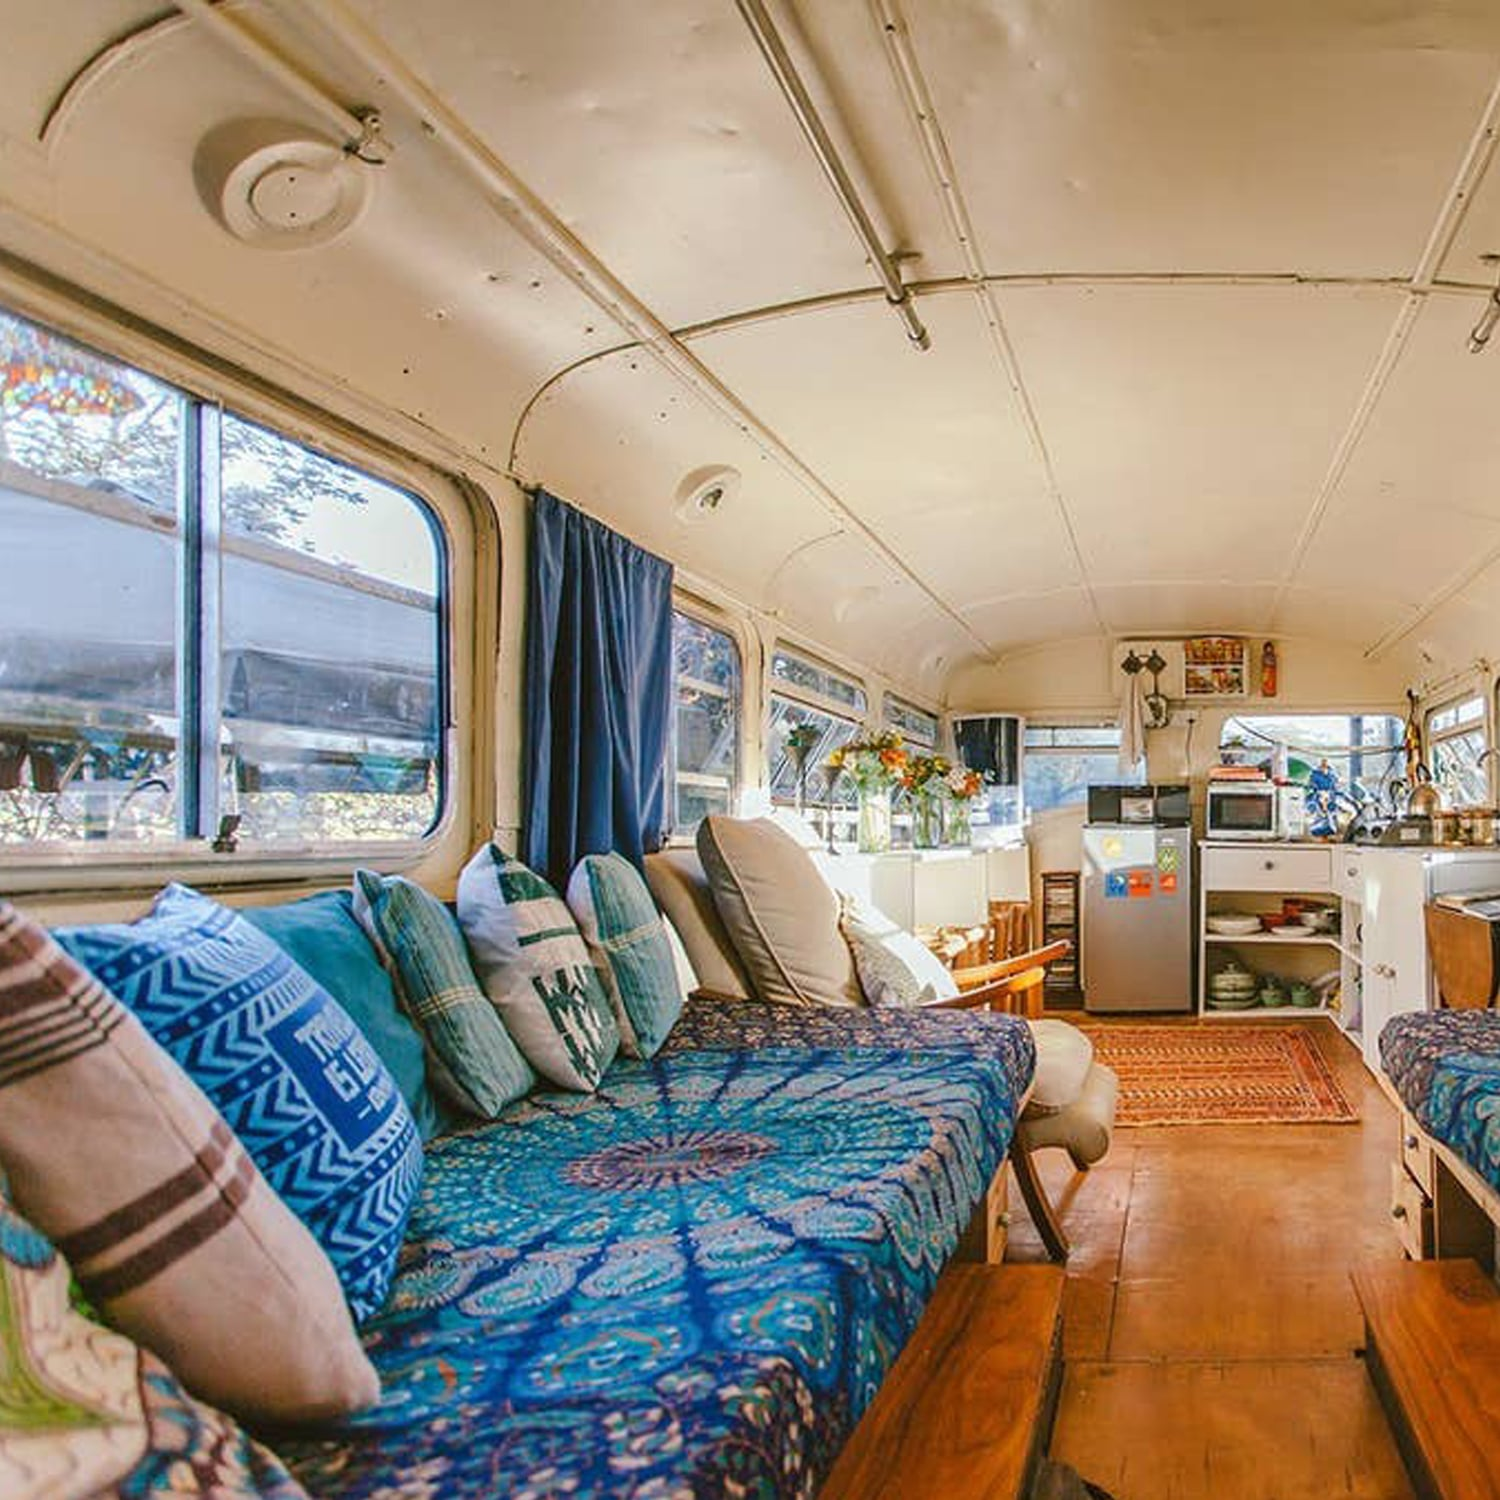 Airbnb Renovated Bus In Nairobi Kenya Popsugar Smart Living